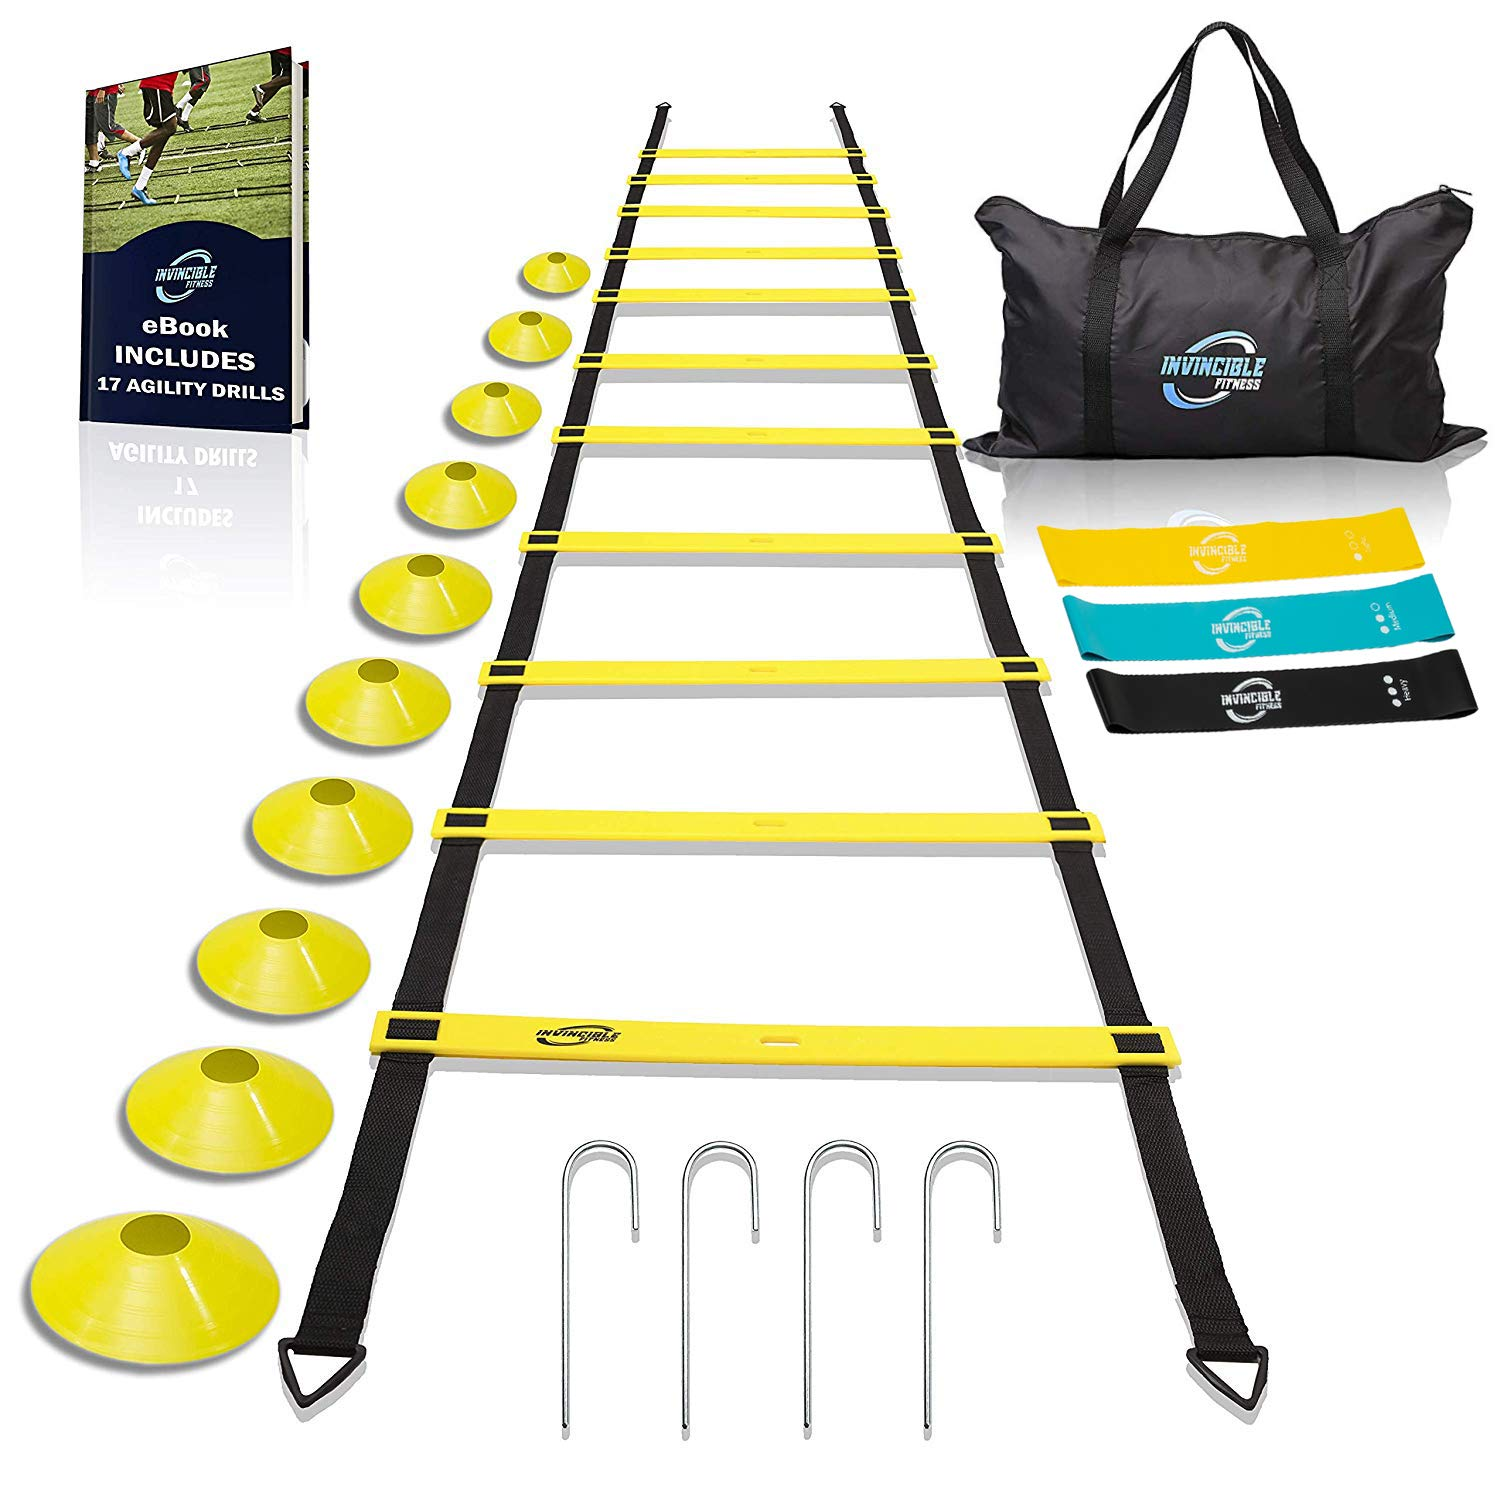 Invincible Fitness Agility Ladder Training Equipment Set, Improves Coordination, Speed, Explosive Power and Strength, Includes 10 Cones, 4 Hooks and 3 Loop Resistance Bands for Outdoor Workout by Invincible Fitness